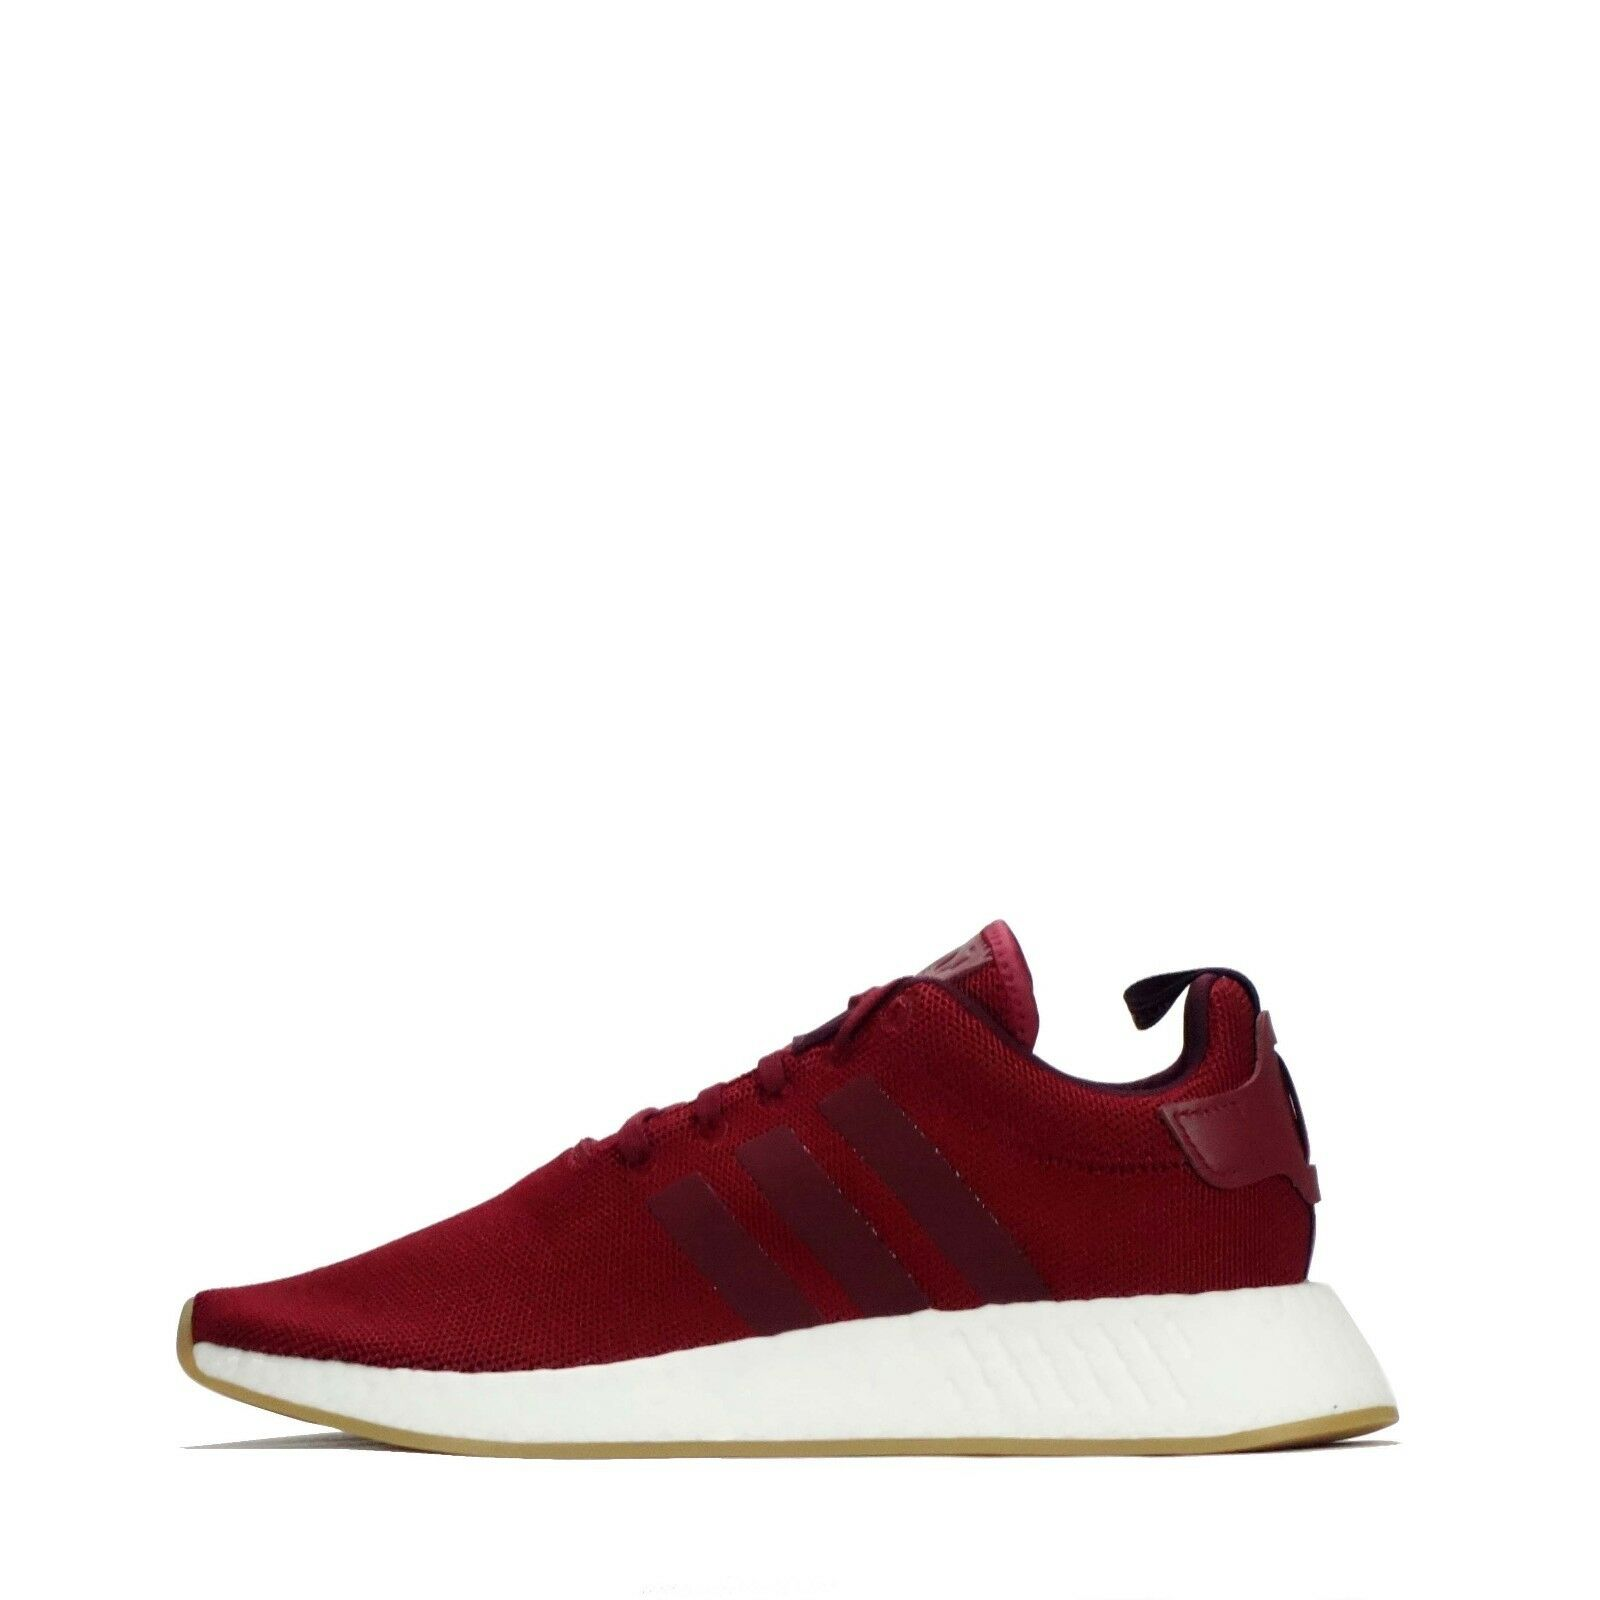 Adidas Originals NMD_R2 Men's shoes in Burgundy Maroon